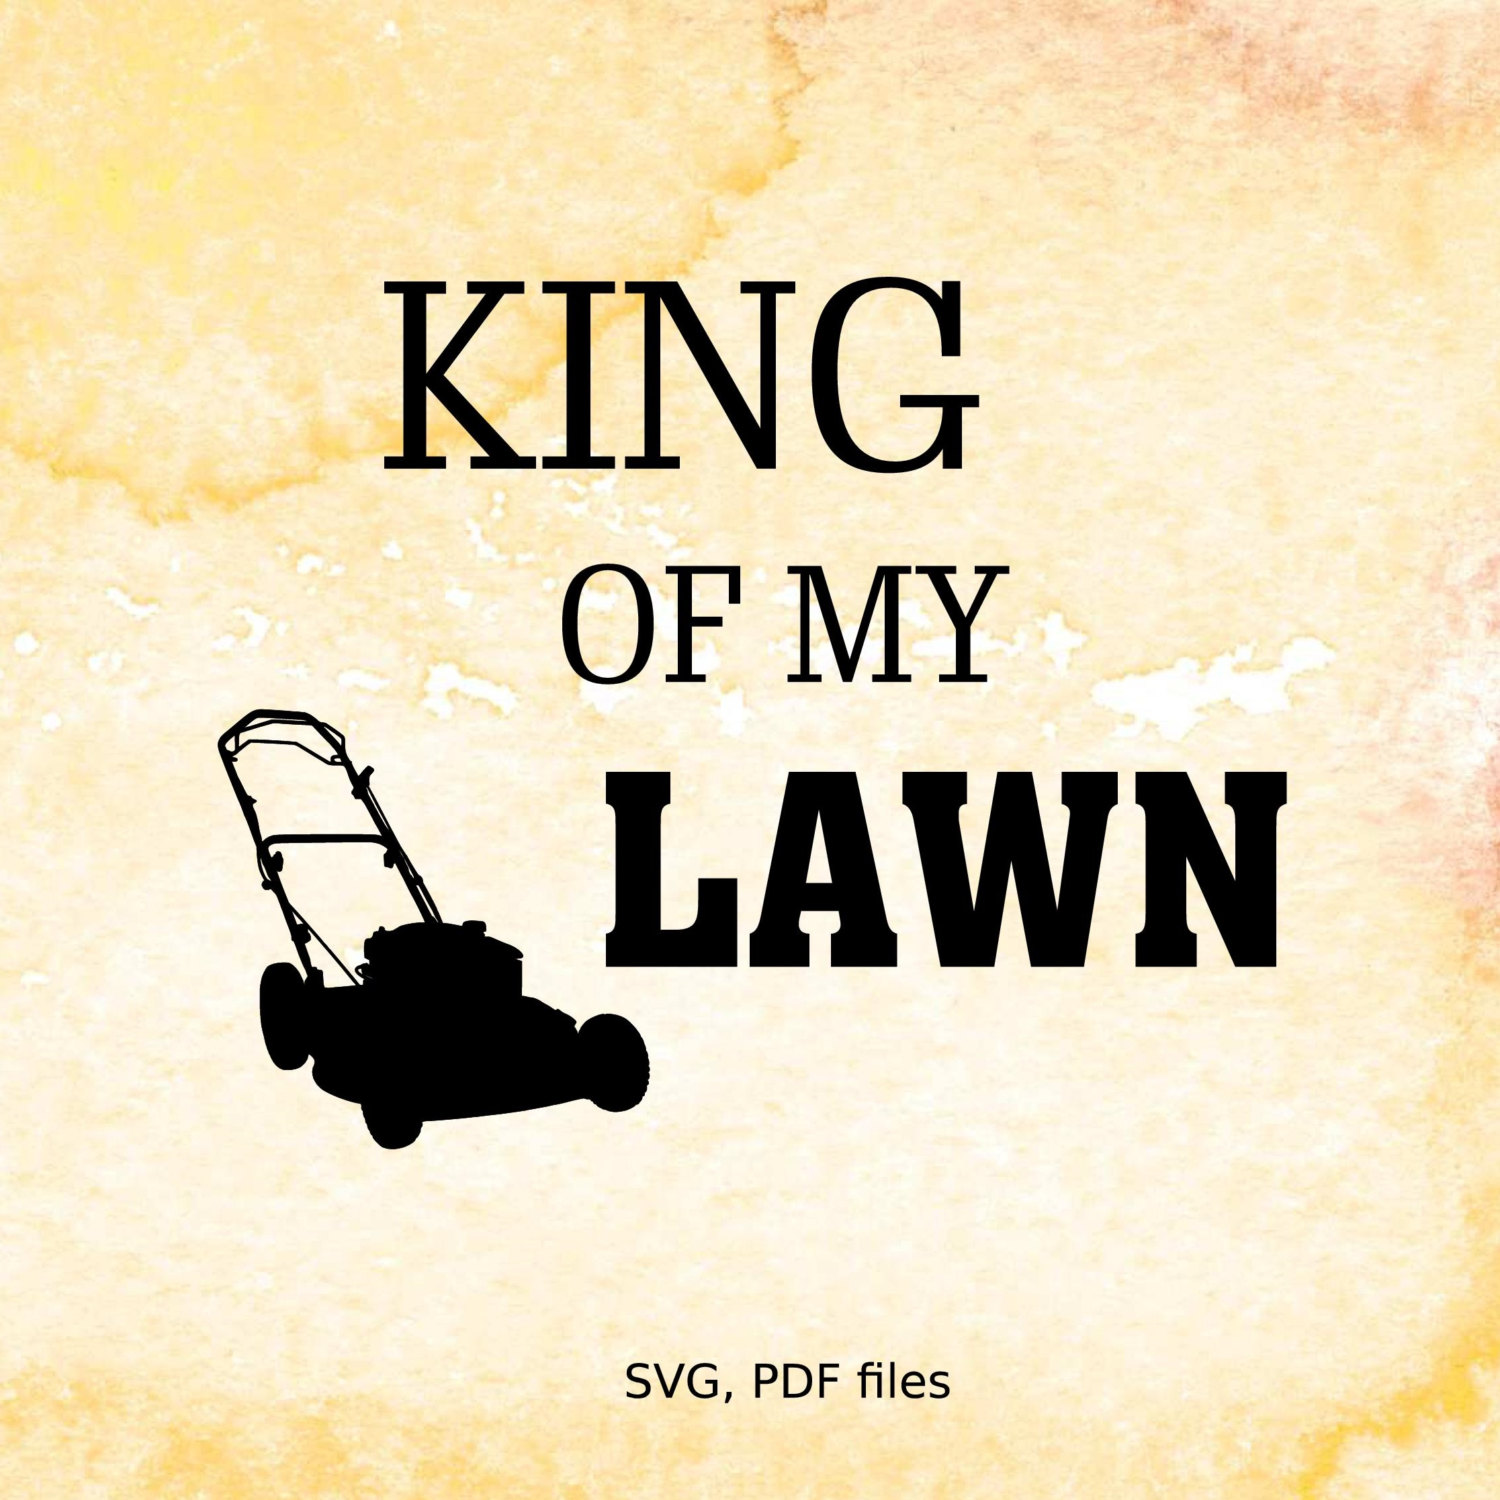 Lawn svg #11, Download drawings